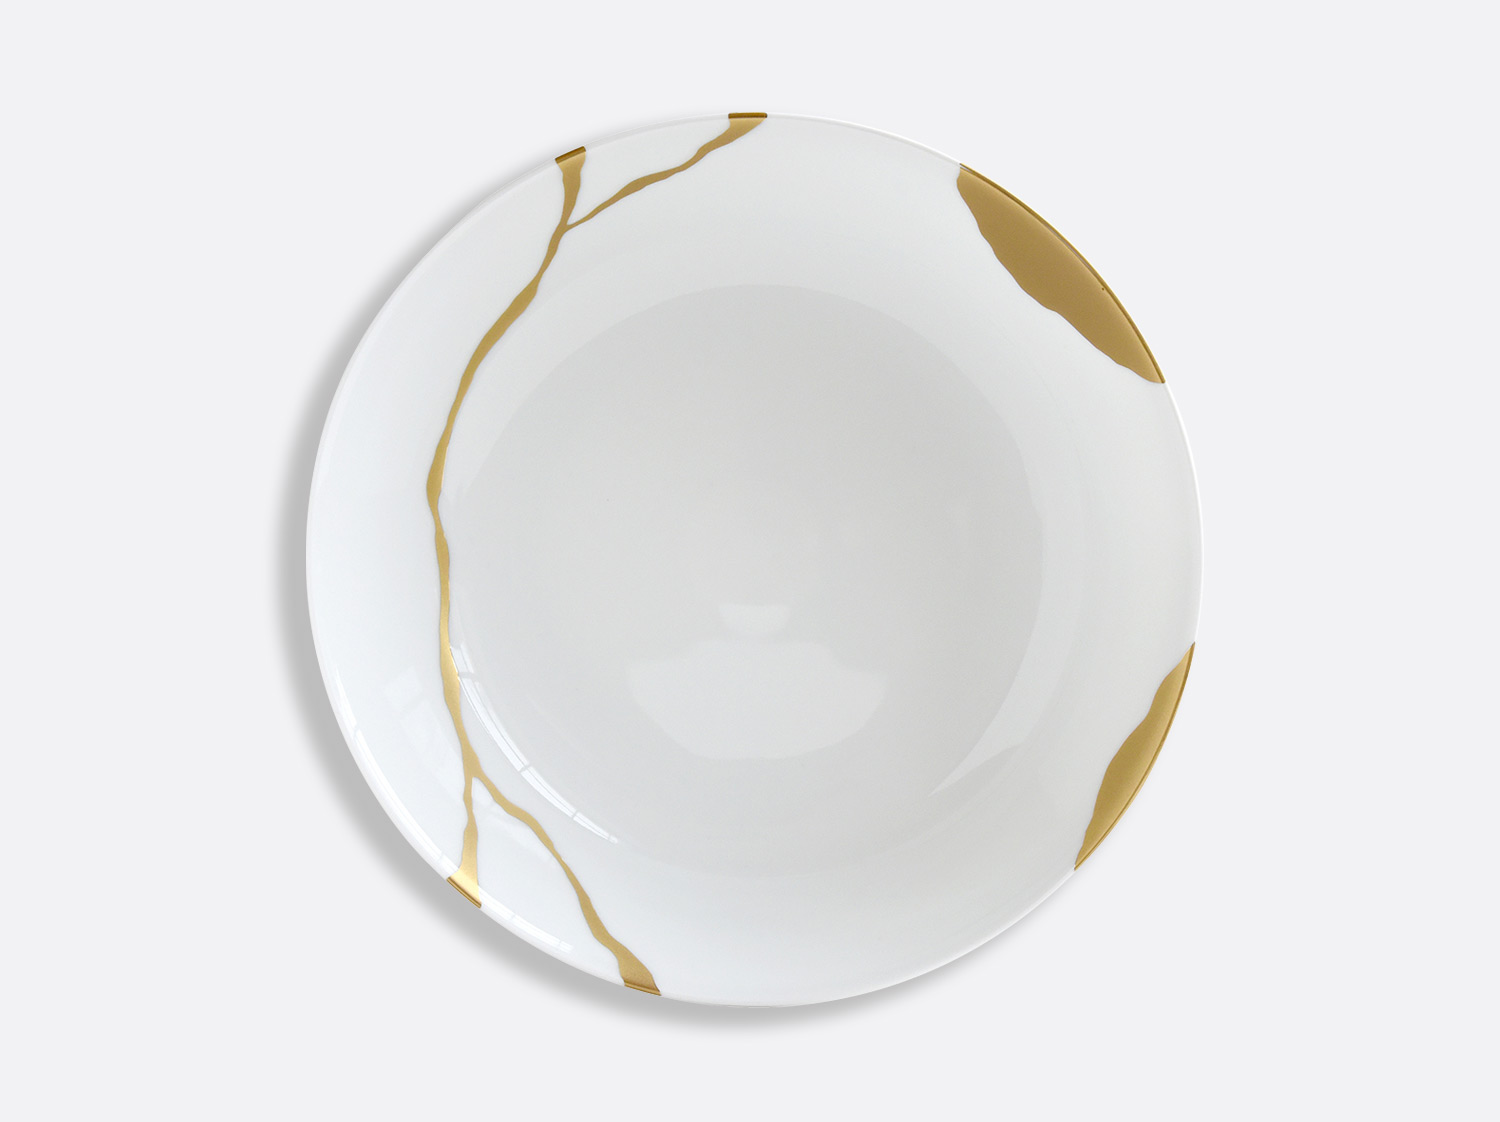 Compotier creux 24 cm en porcelaine de la collection Kintsugi Bernardaud